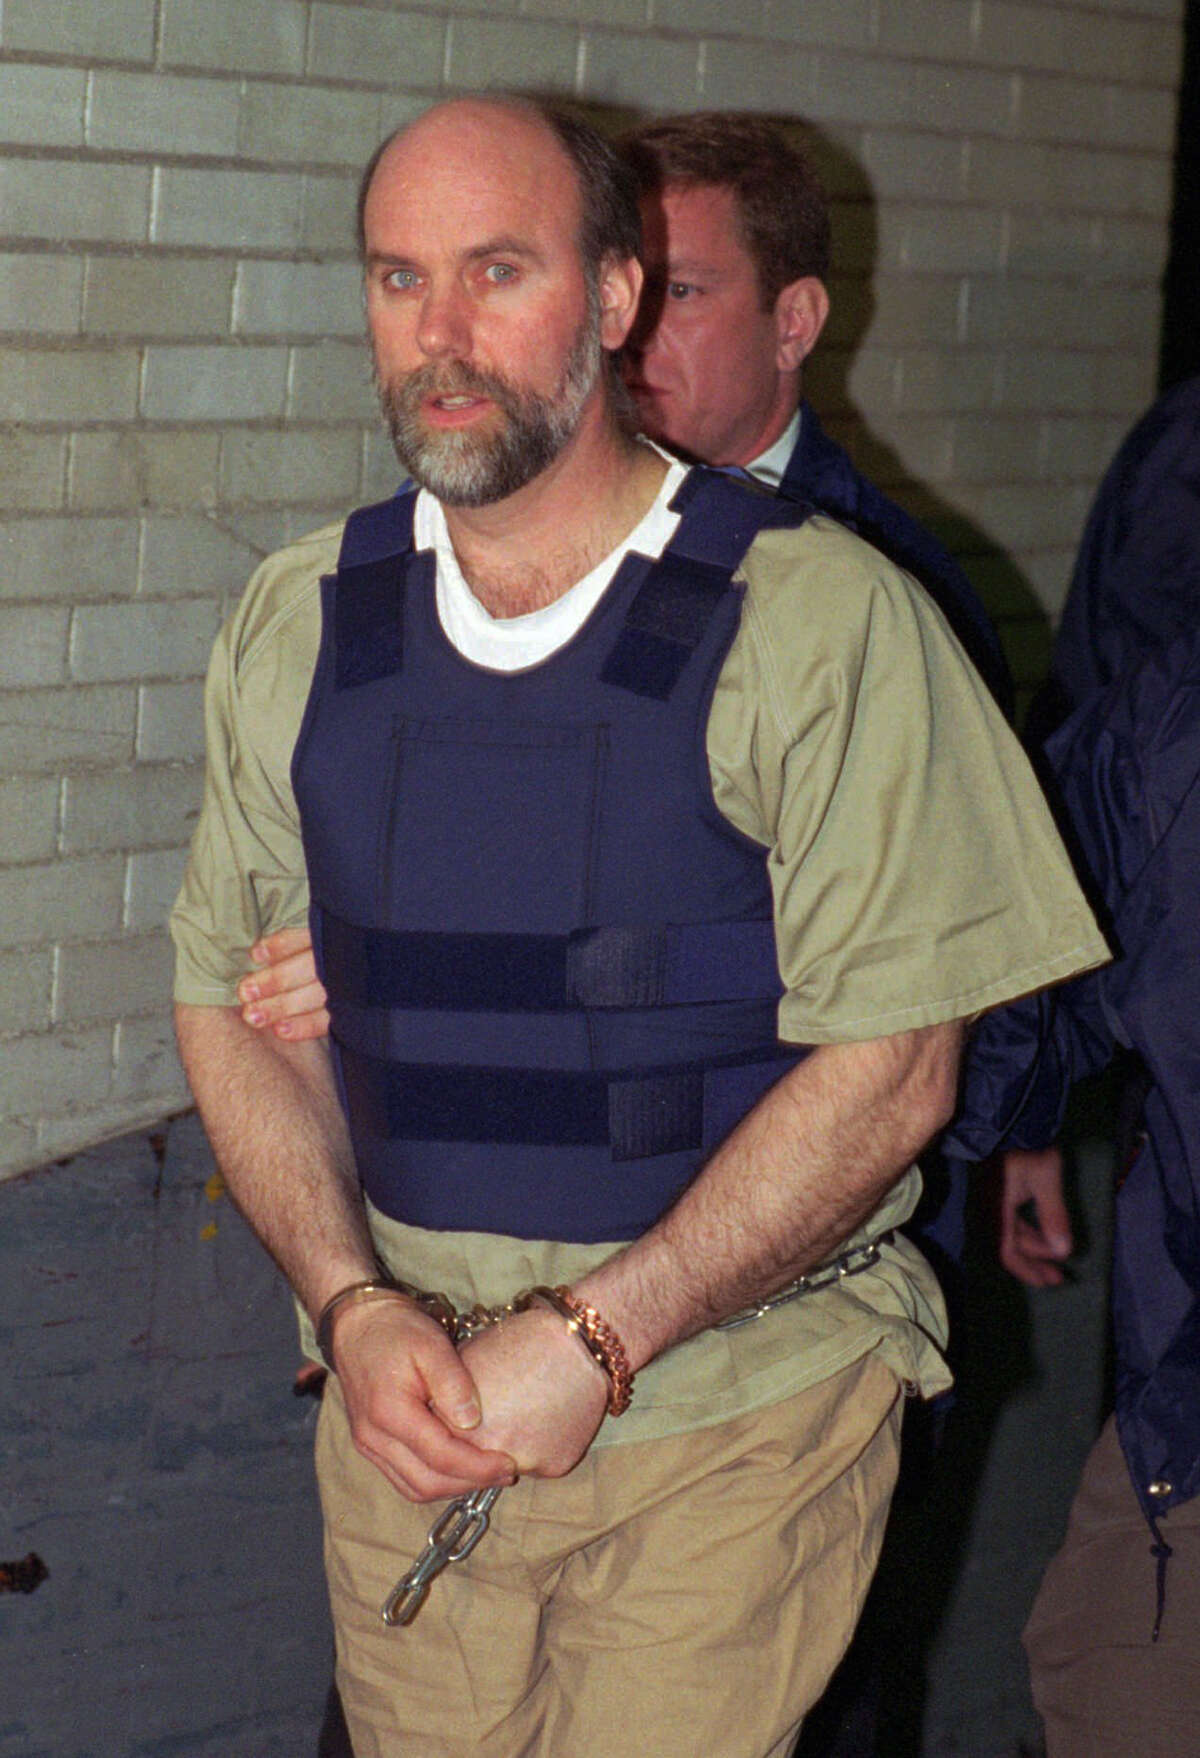 FILE - In this May 22, l995, file photo, James Nichols is escorted into the U.S. District Court building in Detroit. Nichols, the brother of Oklahoma City bombing conspirator Terry Nichols, died Tuesday, Feb. 14, 2017, in a Saginaw, Mich., hospital following a lengthy illness. He was 62. (AP Photo/Richard Sheinwald, File)